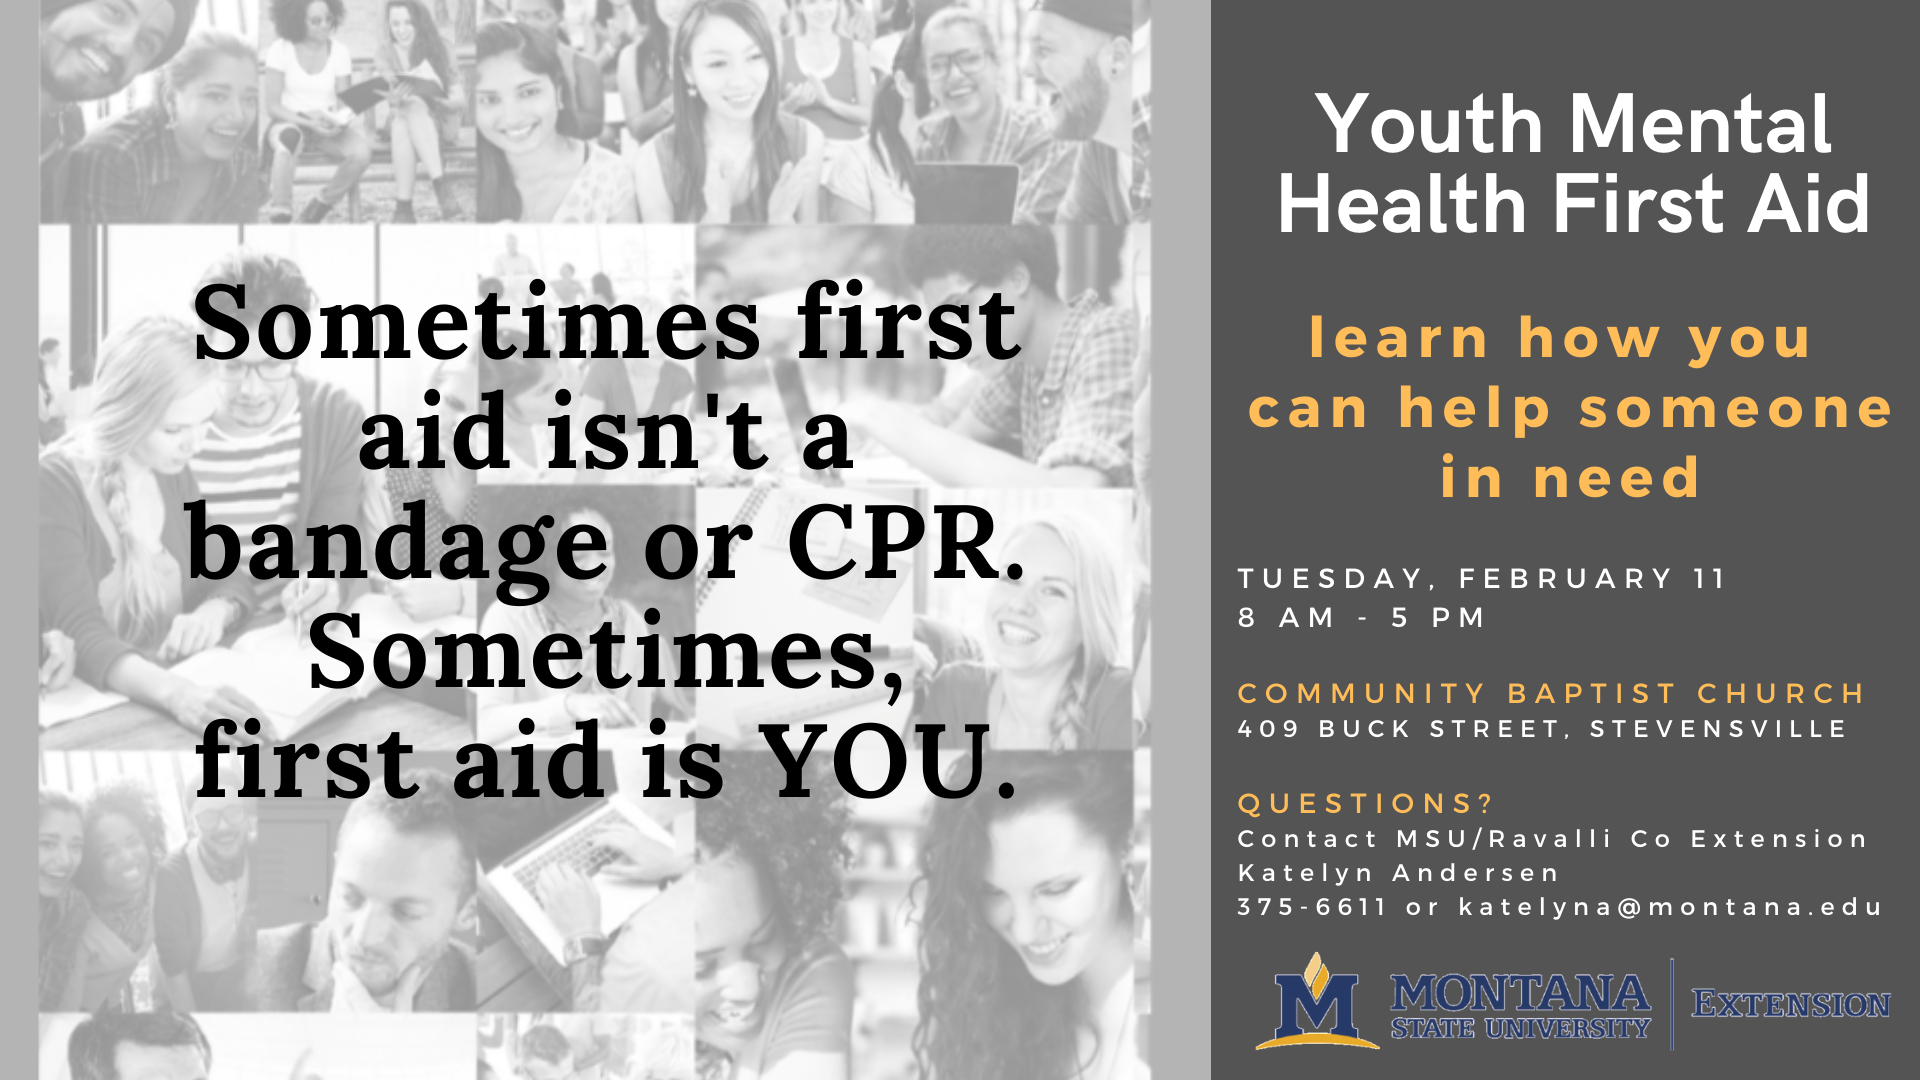 Youth Mental Health First Aid Class